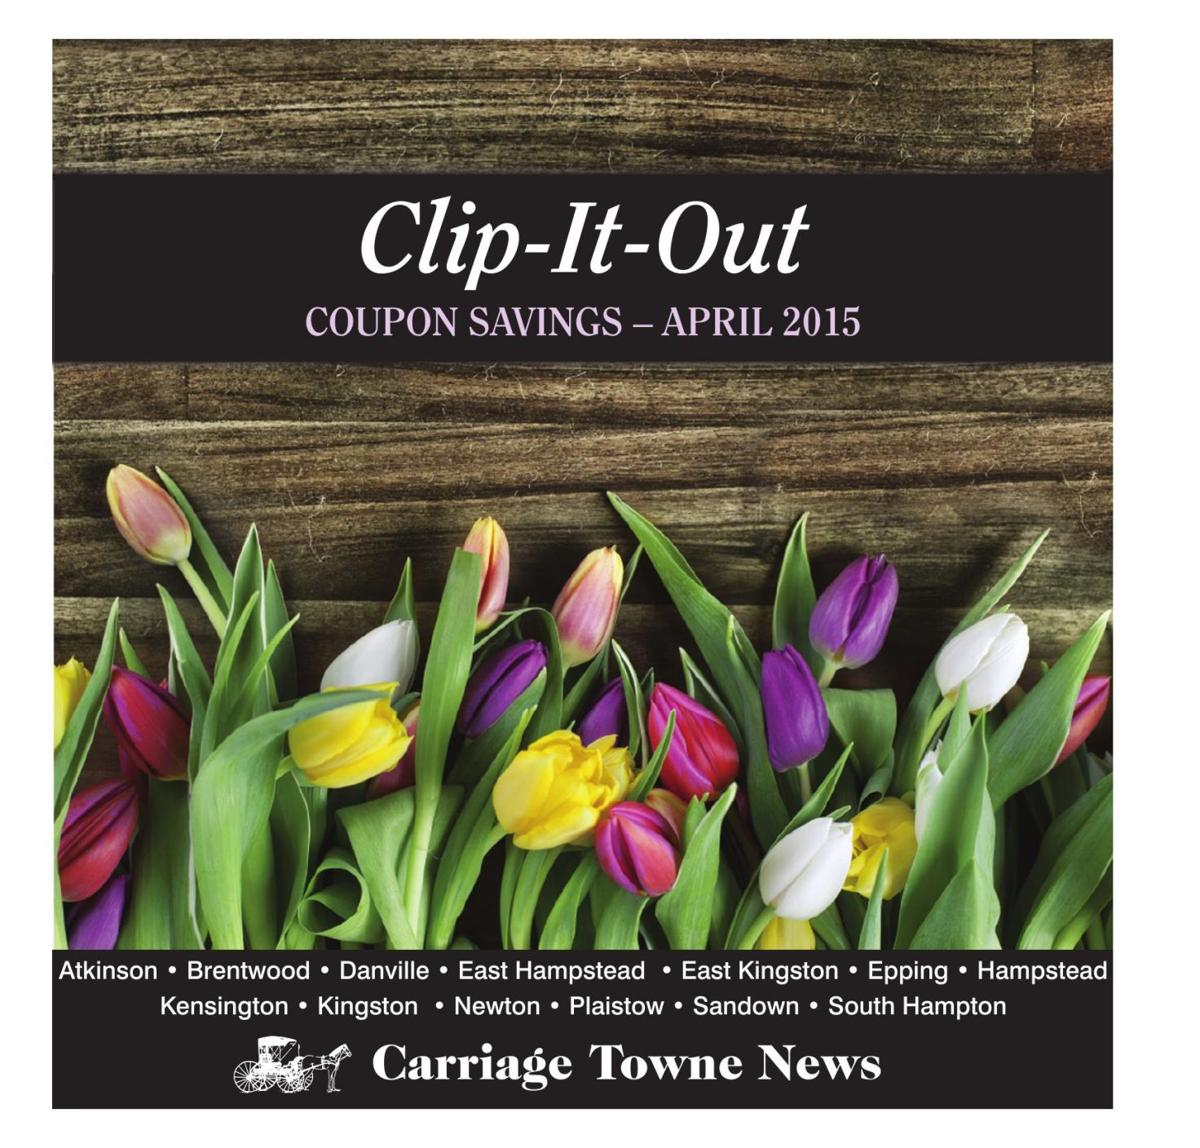 April 2015 Clip-It-Out Coupon Guide